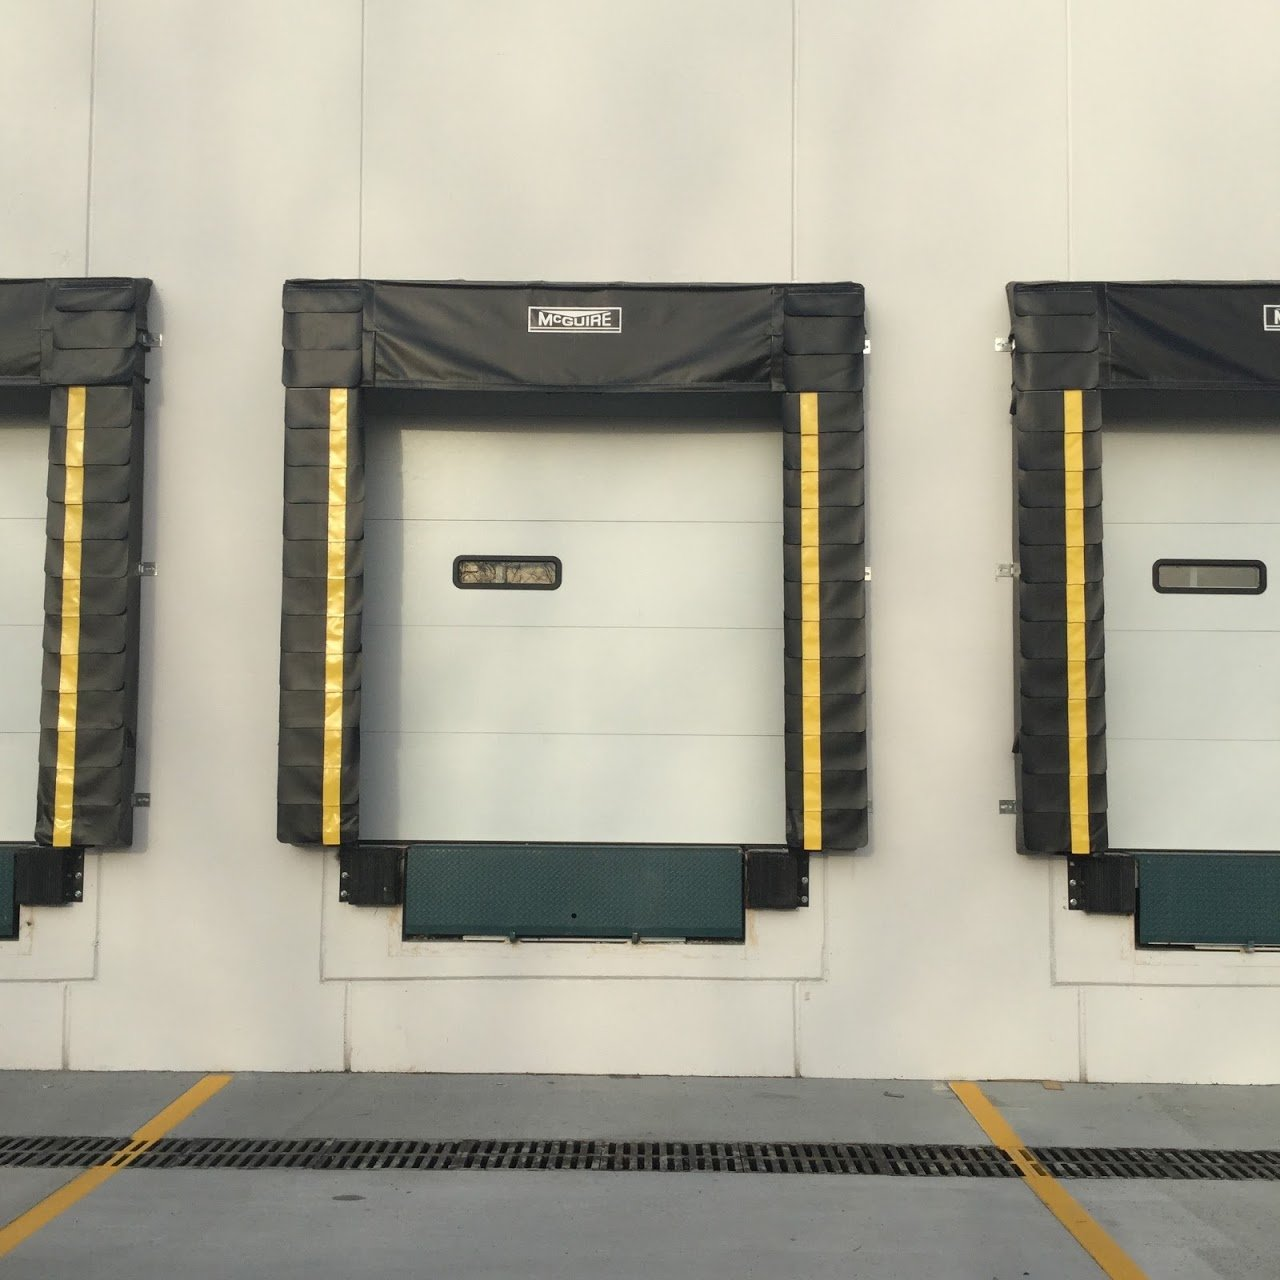 design the loading dock: determine the door sizes, white dock doors with single view panel